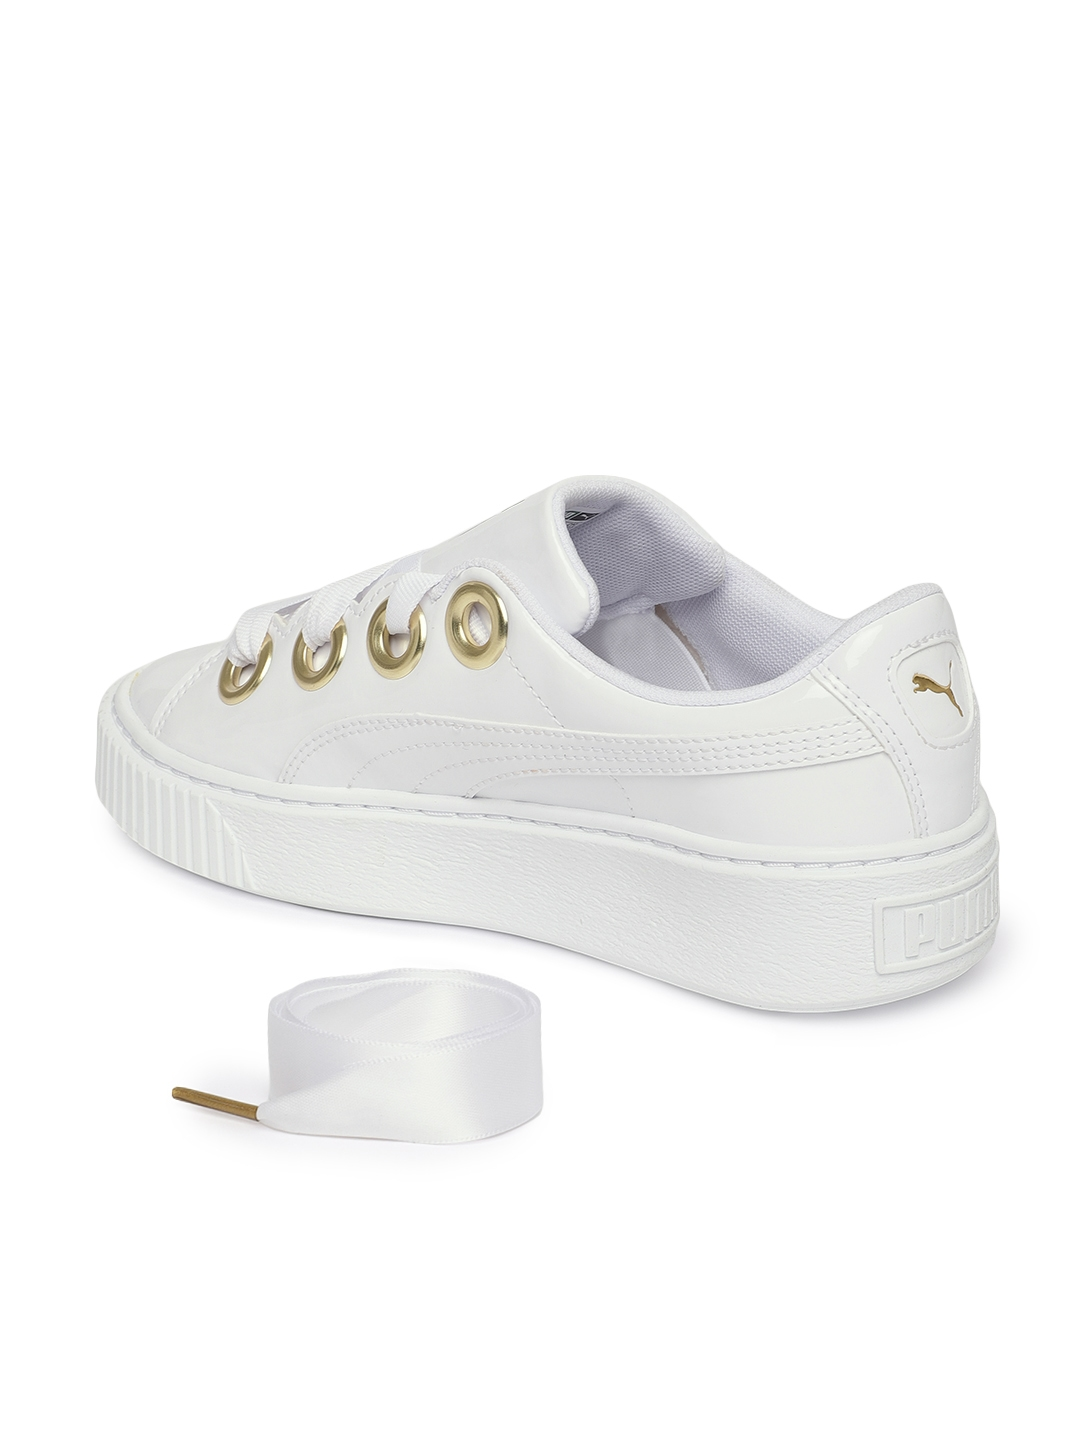 b3c2d940311 Buy Puma Women White Platform Kiss Sneakers - Casual Shoes for Women ...